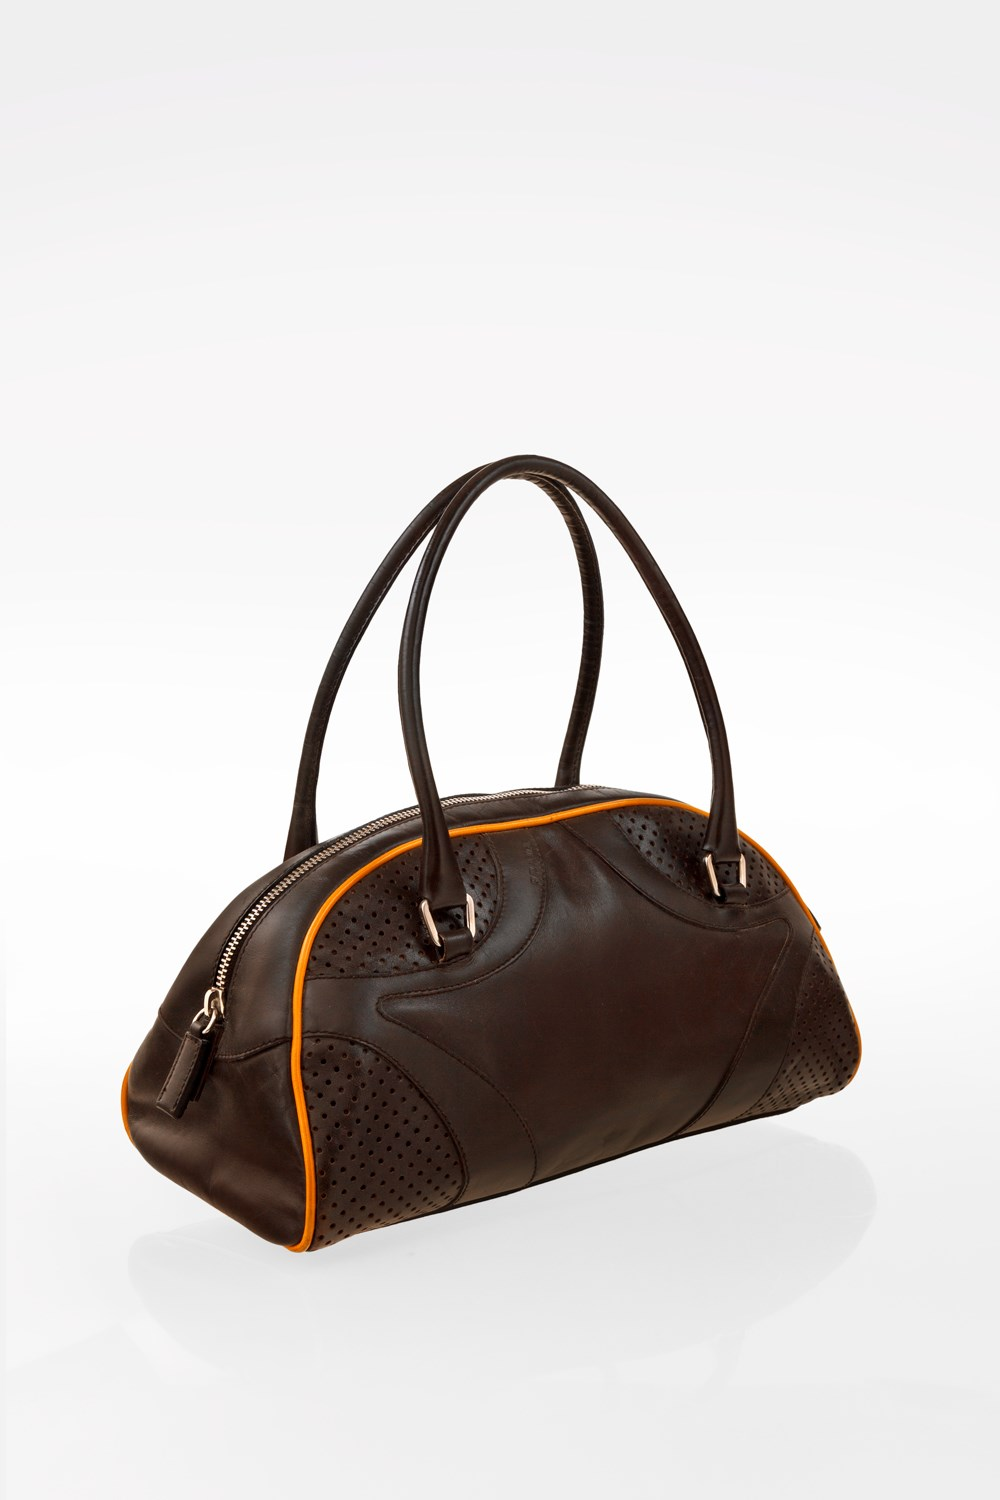 57544a2abd2f Small Brown Leather Bauletto with Perforated Details